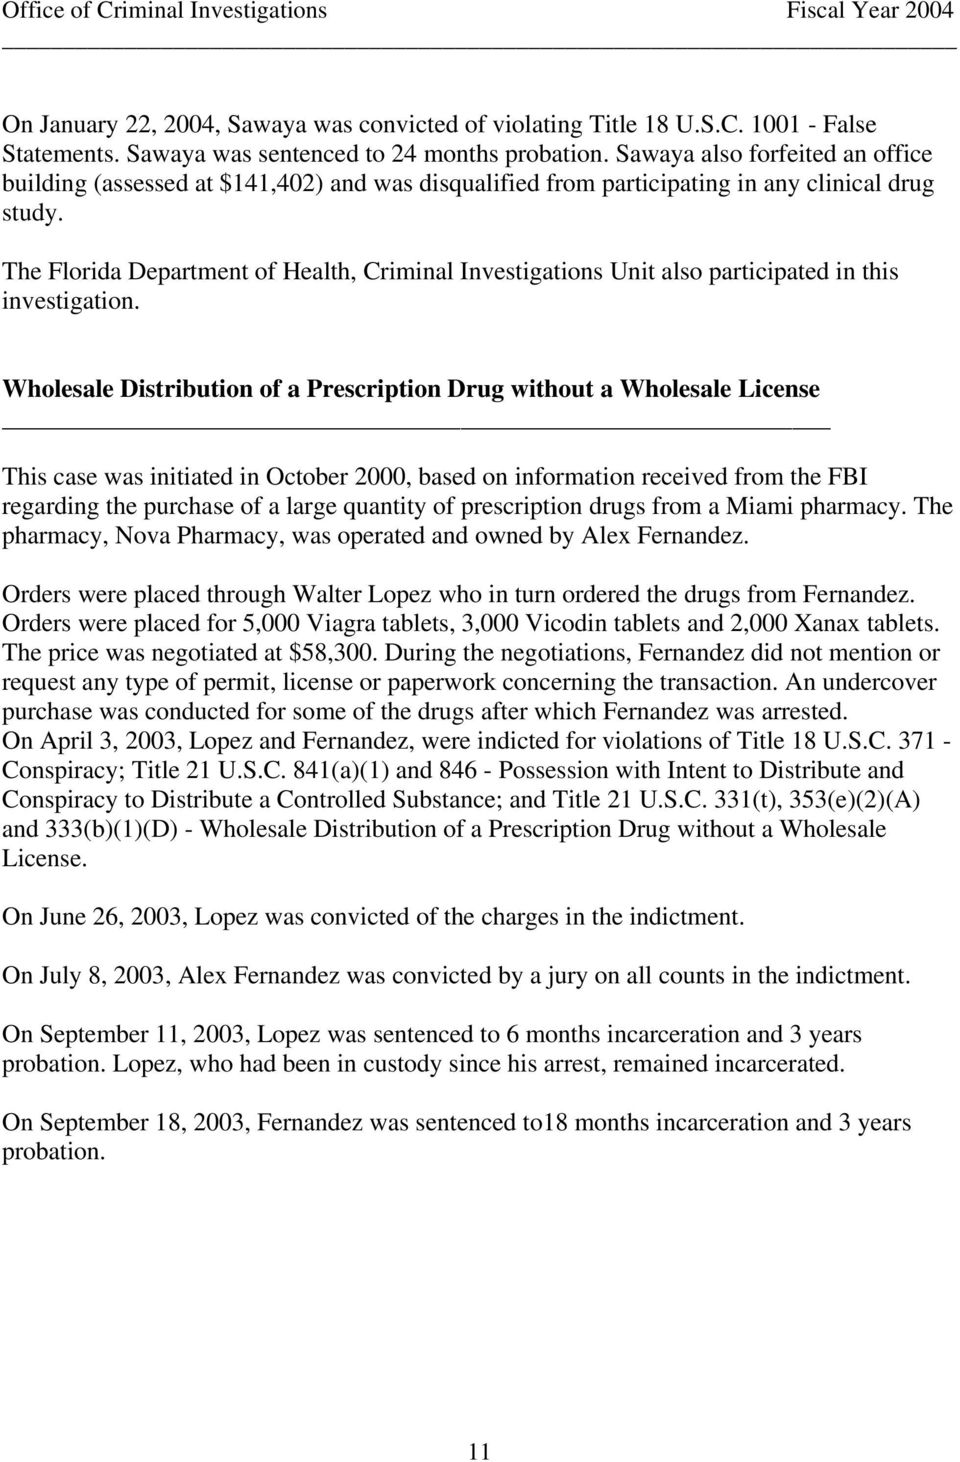 The Florida Department of Health, Criminal Investigations Unit also participated in this investigation.